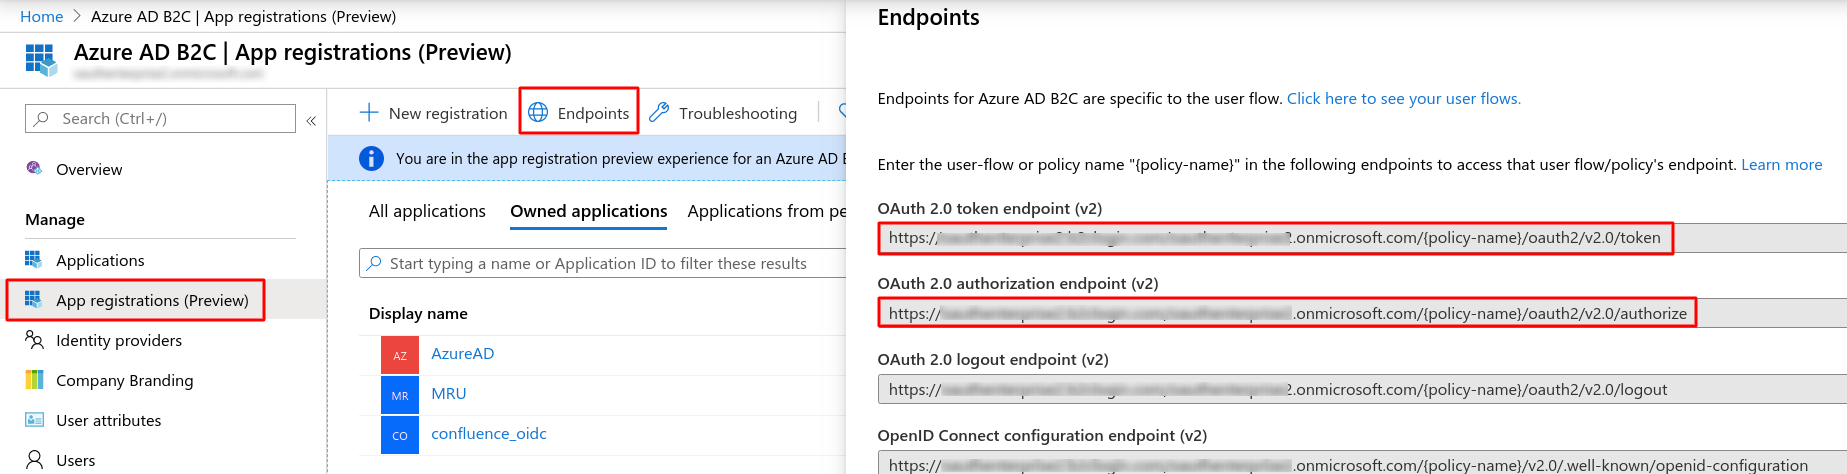 Microsoft Azure b2c Single Sign On (sso) Login : azure-b2c-endpoints